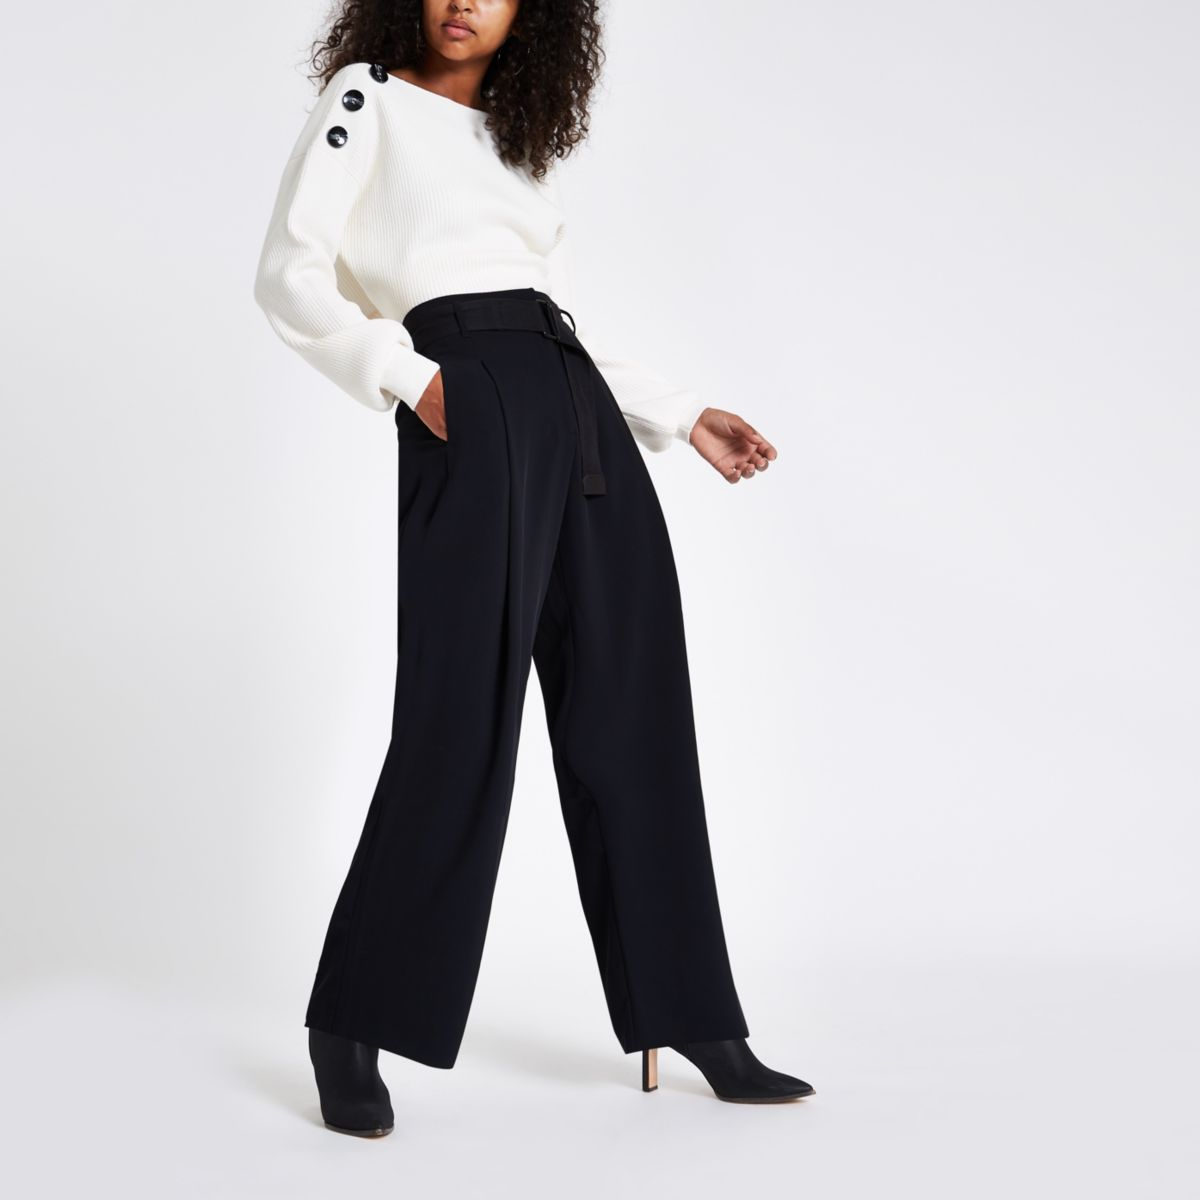 Black wide leg belted pants